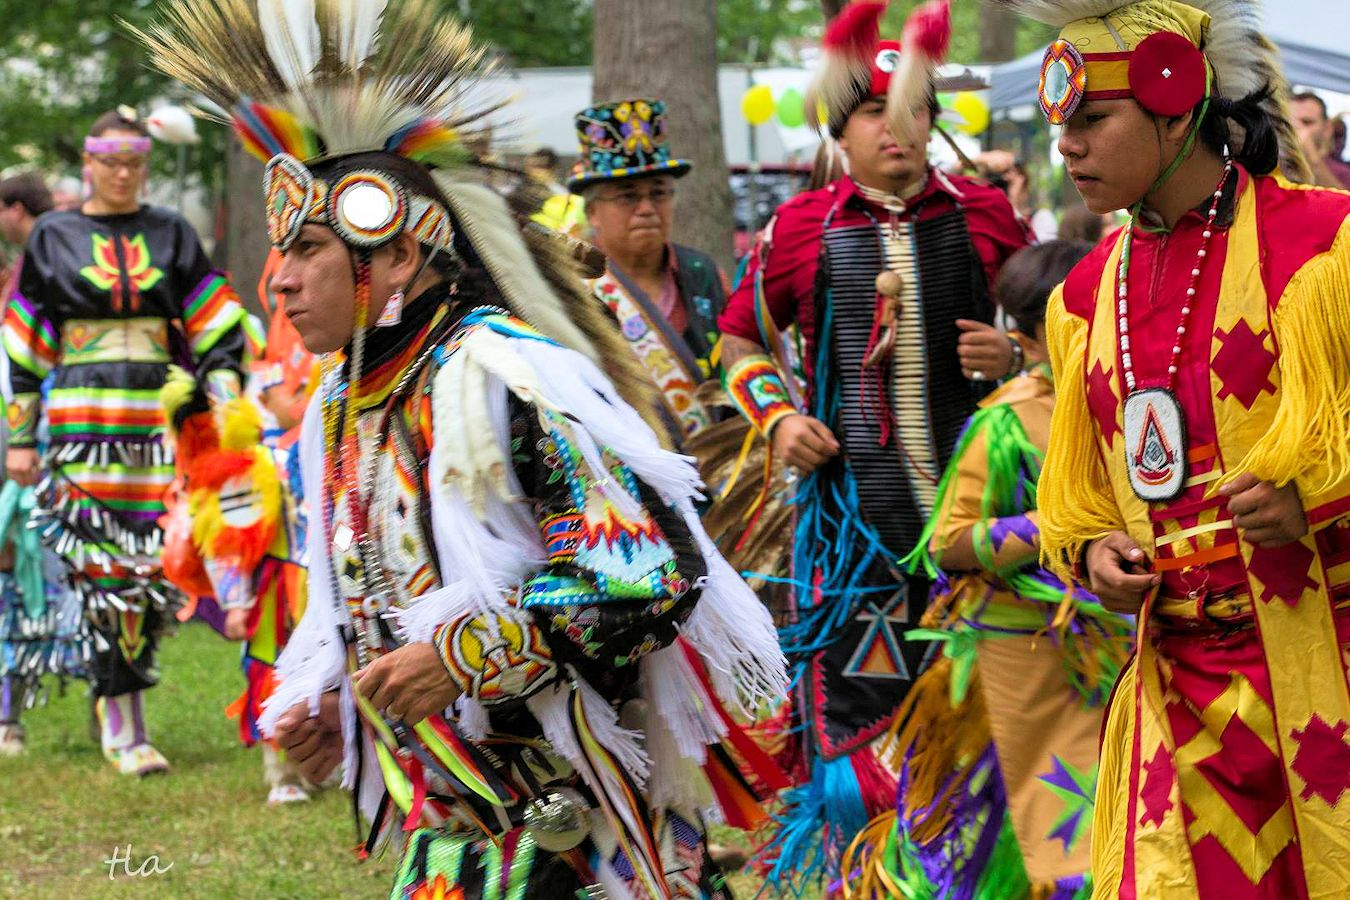 Potawatomi Trails Pow Wow